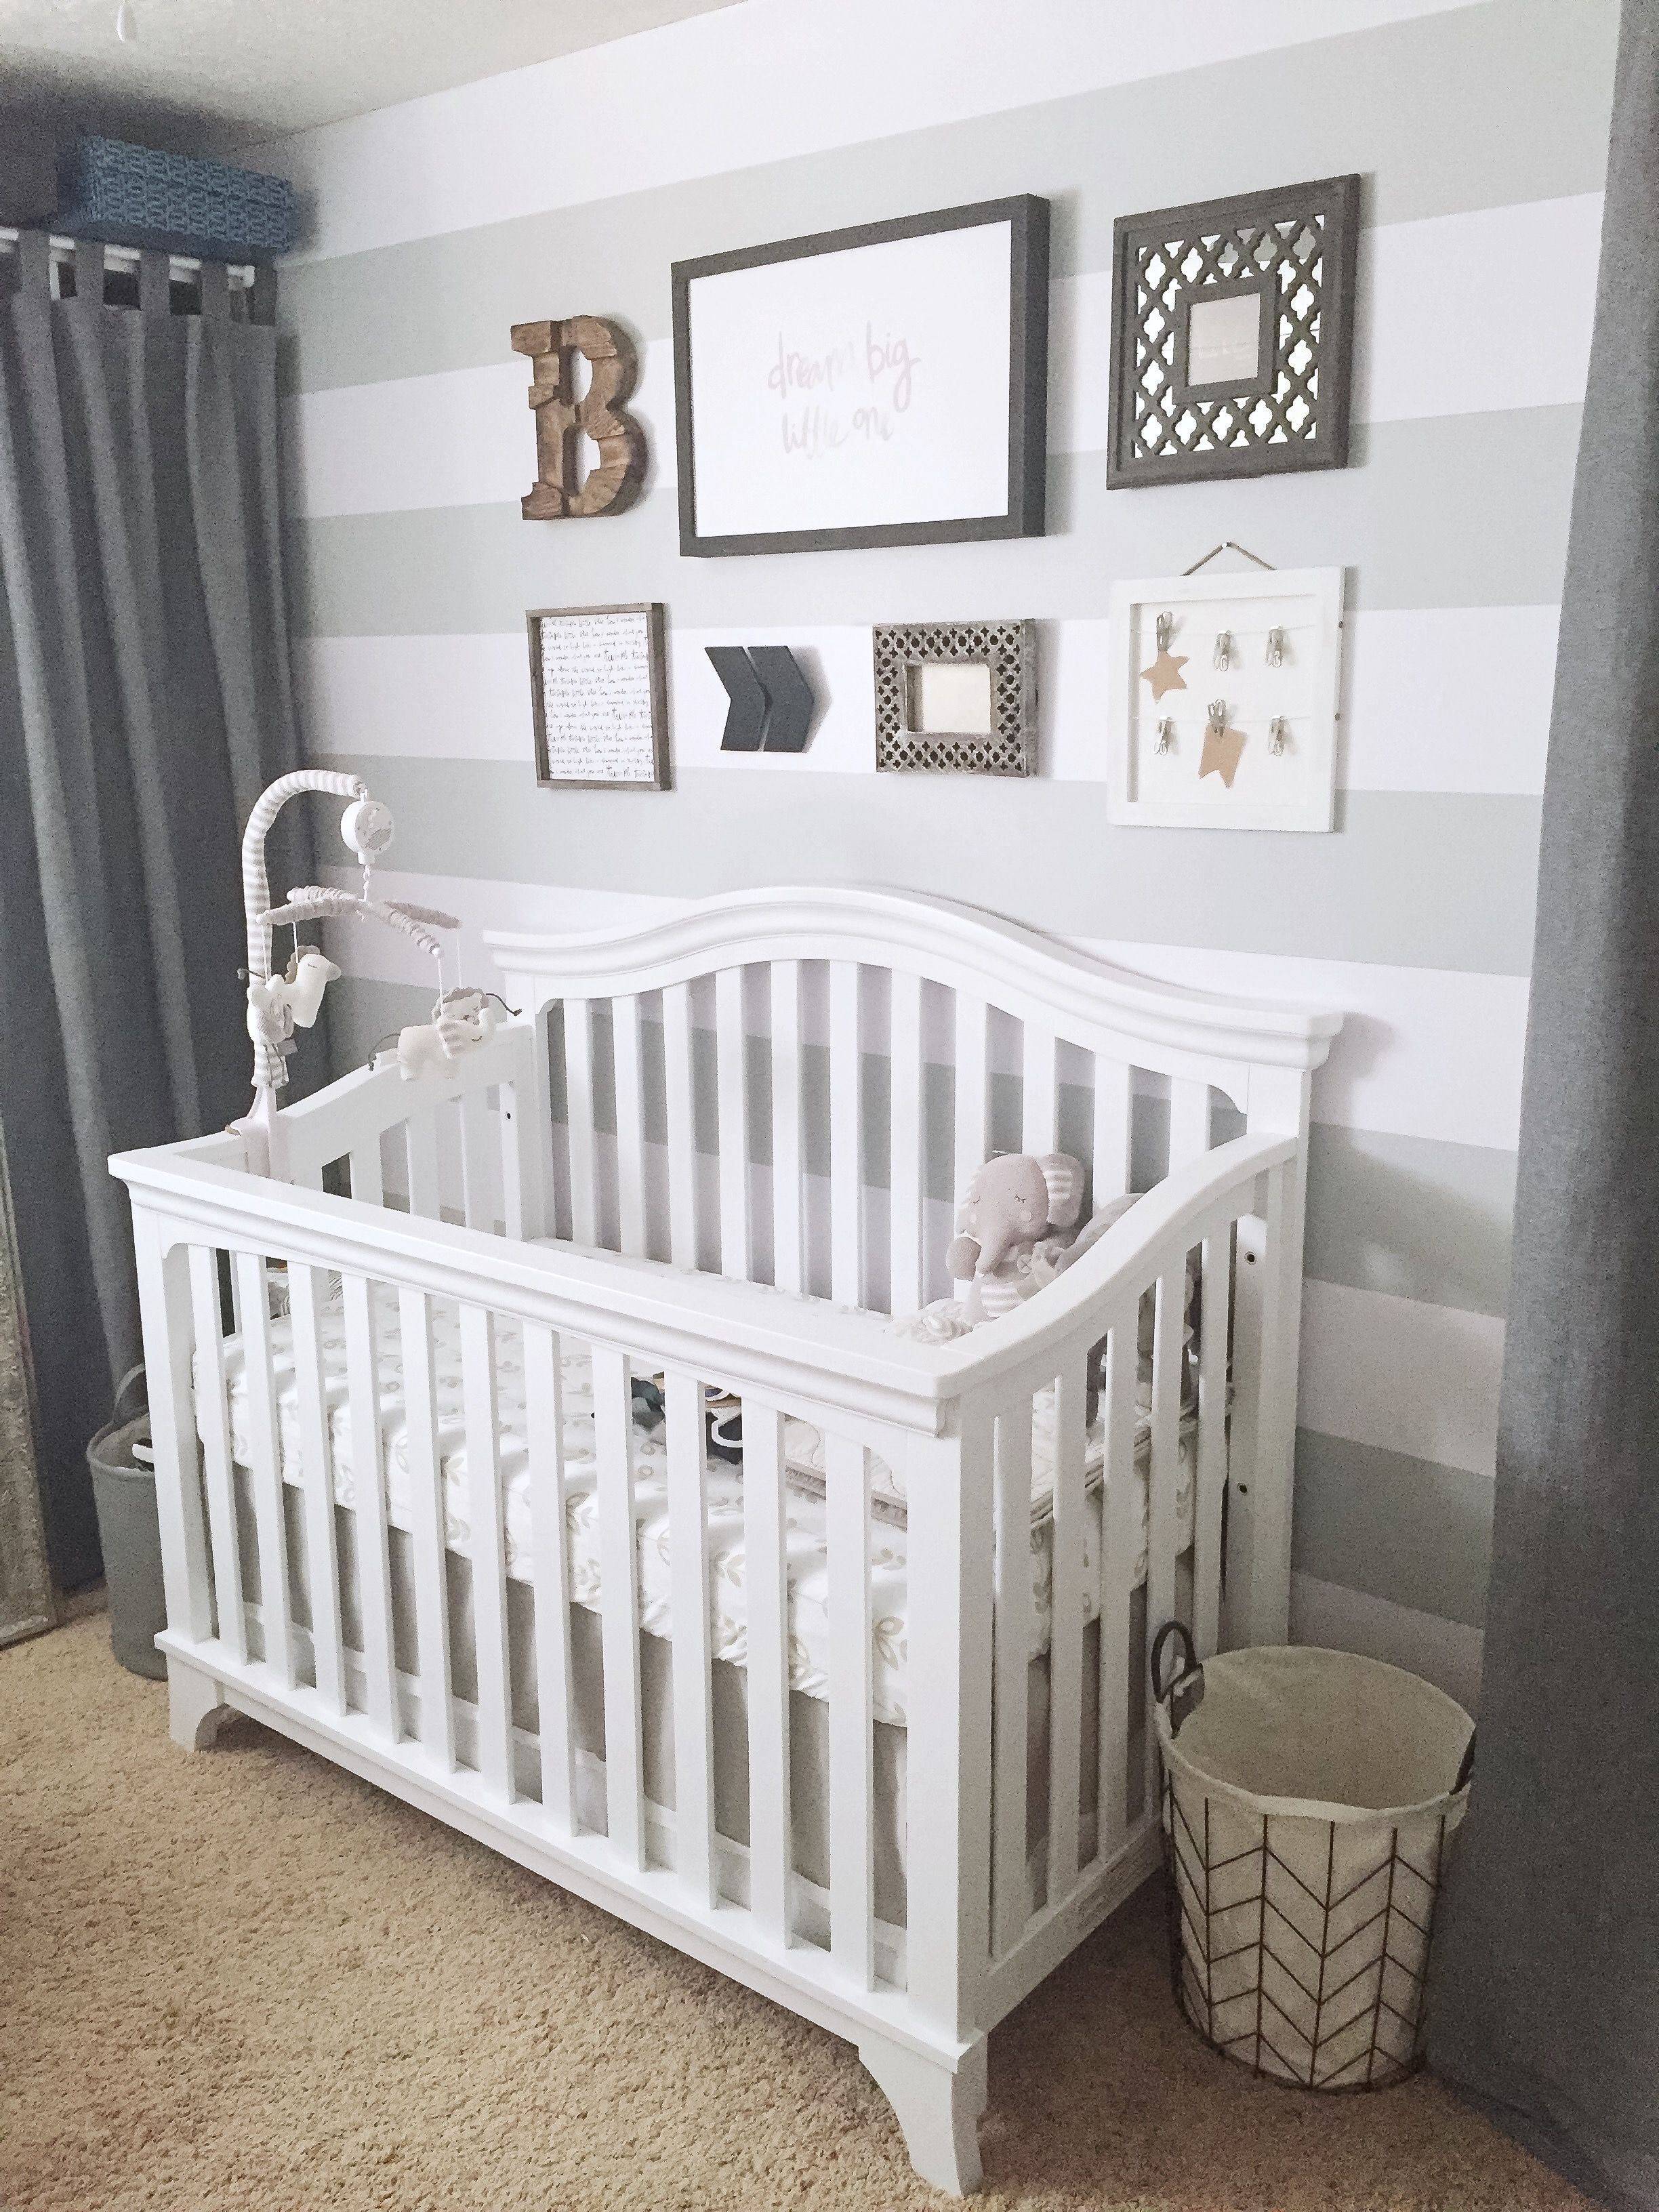 Baby cribs kijiji calgary - How To Transform A Small Room Into The Perfect Baby Nursery